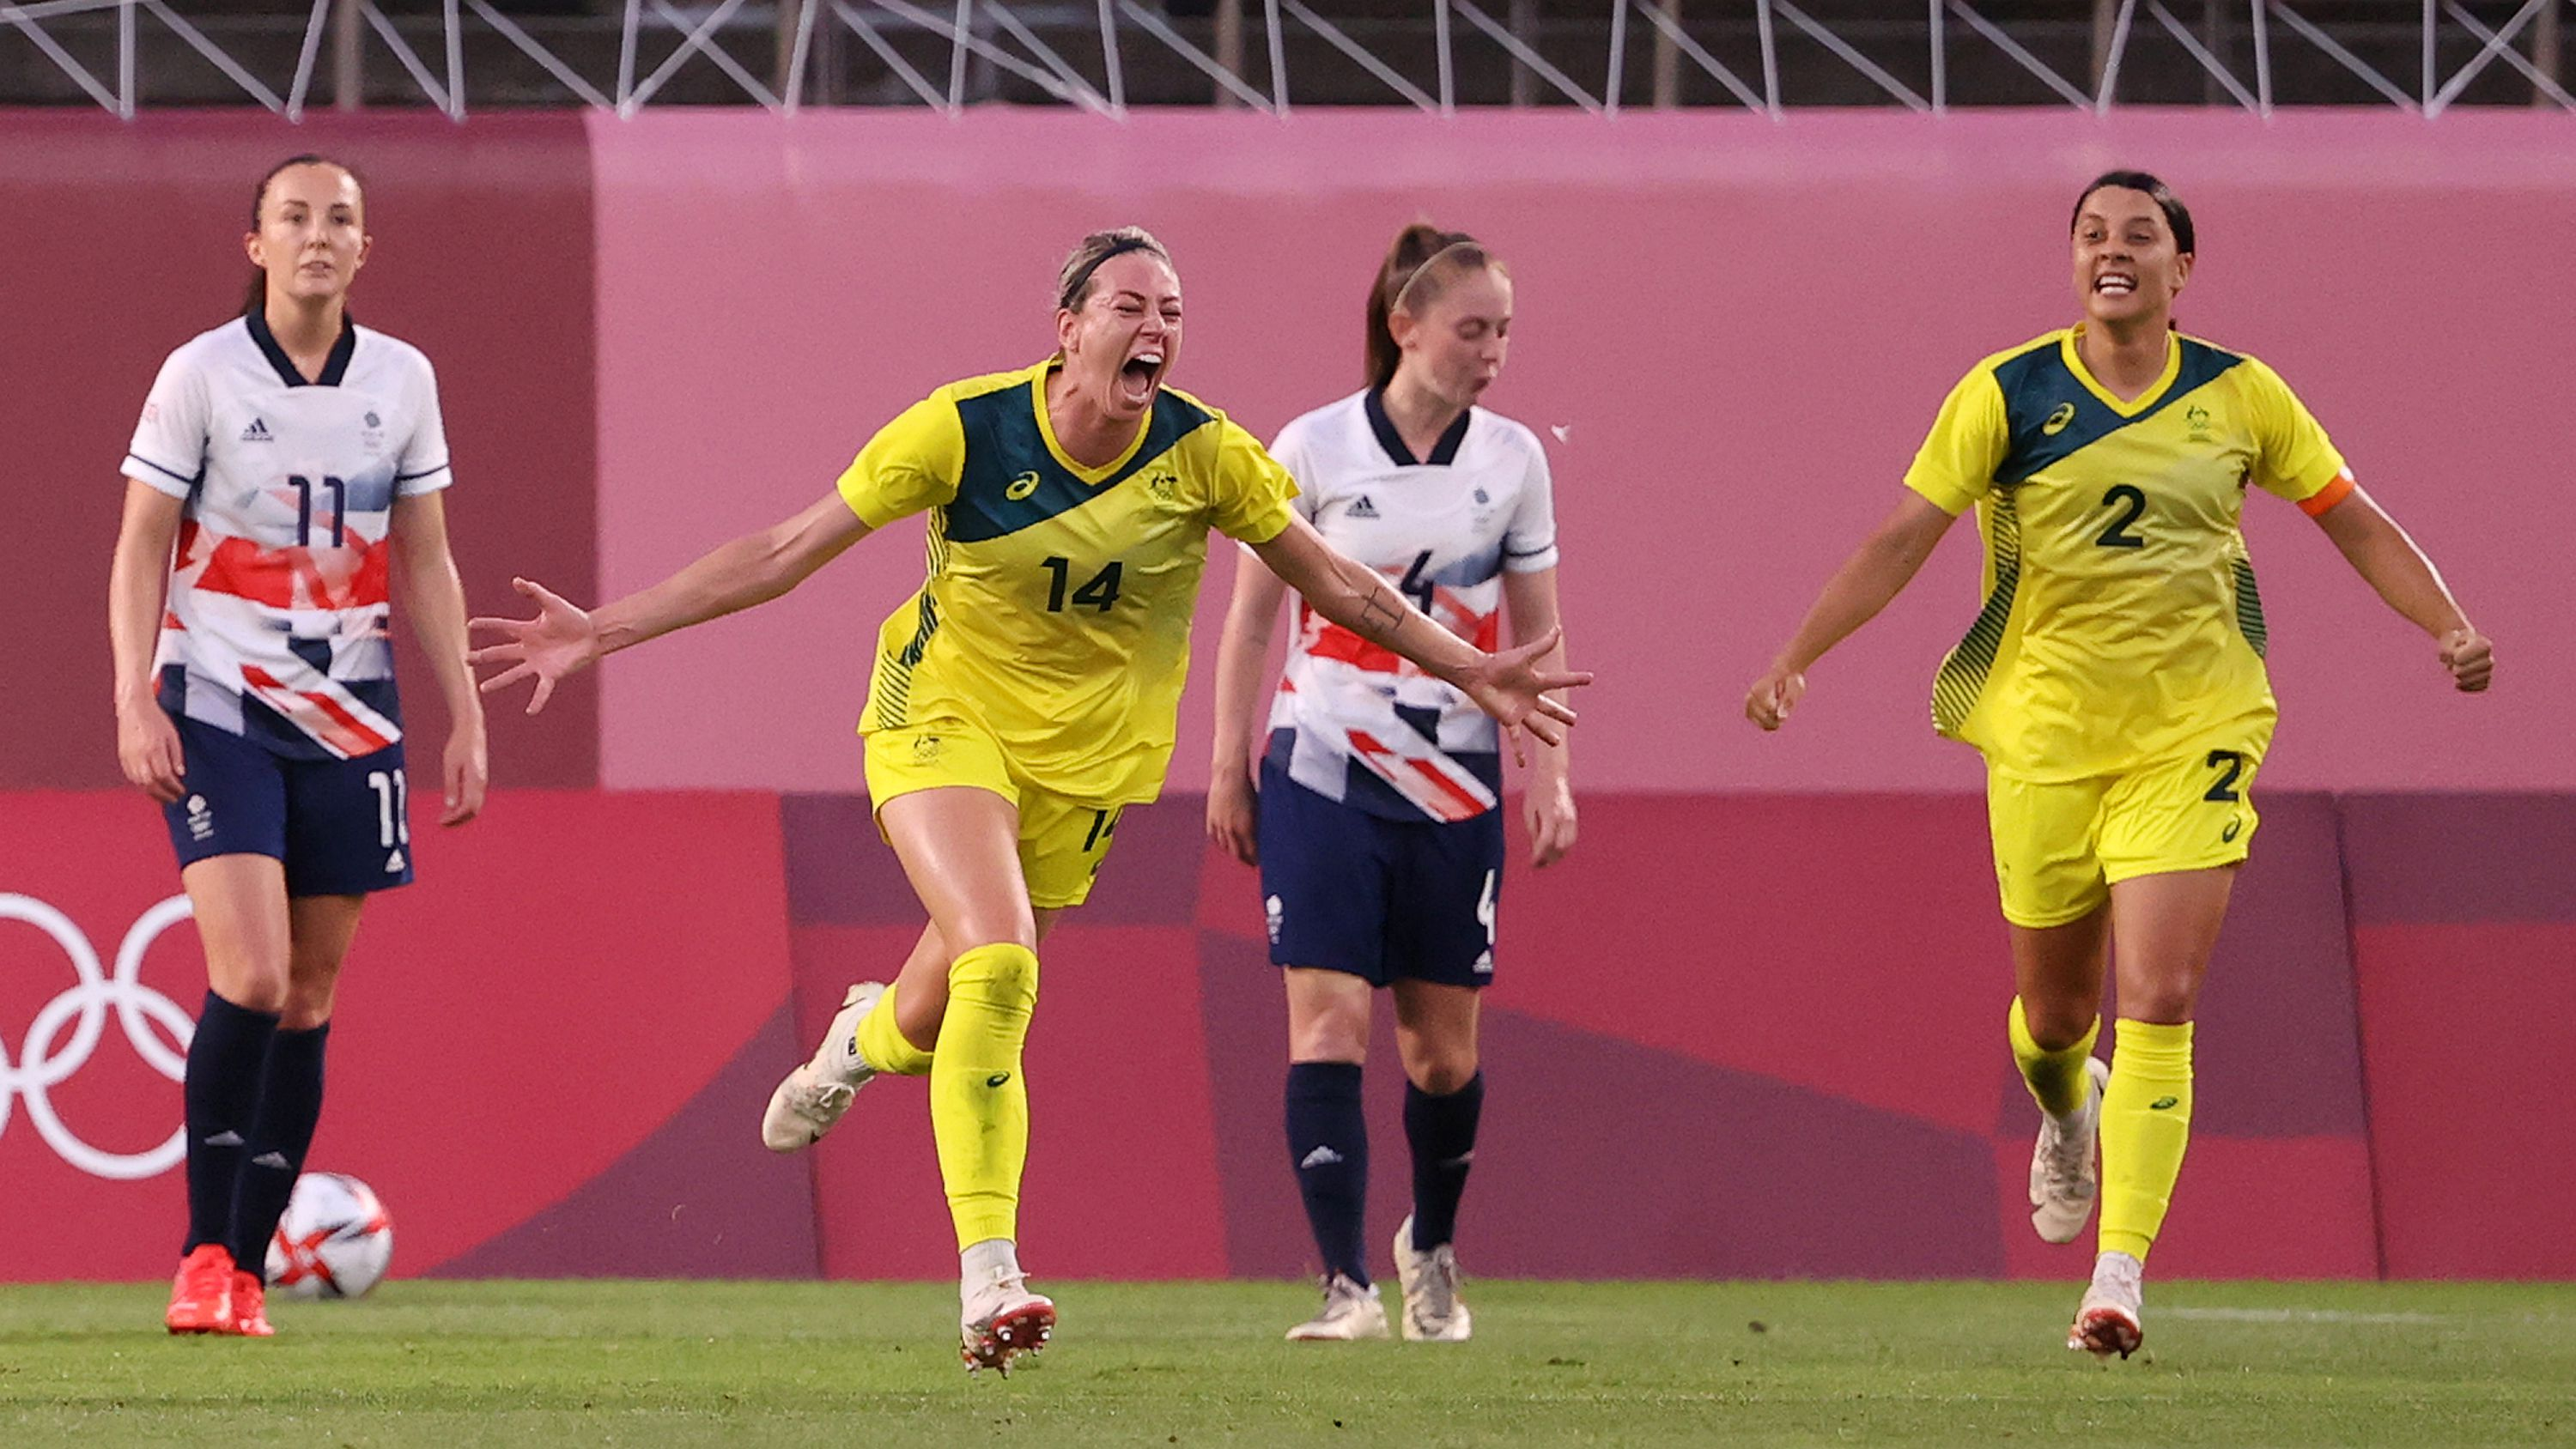 Mayhem as Matildas beat Great Britain in extra-time thriller to book a spot in Olympic semi-finals